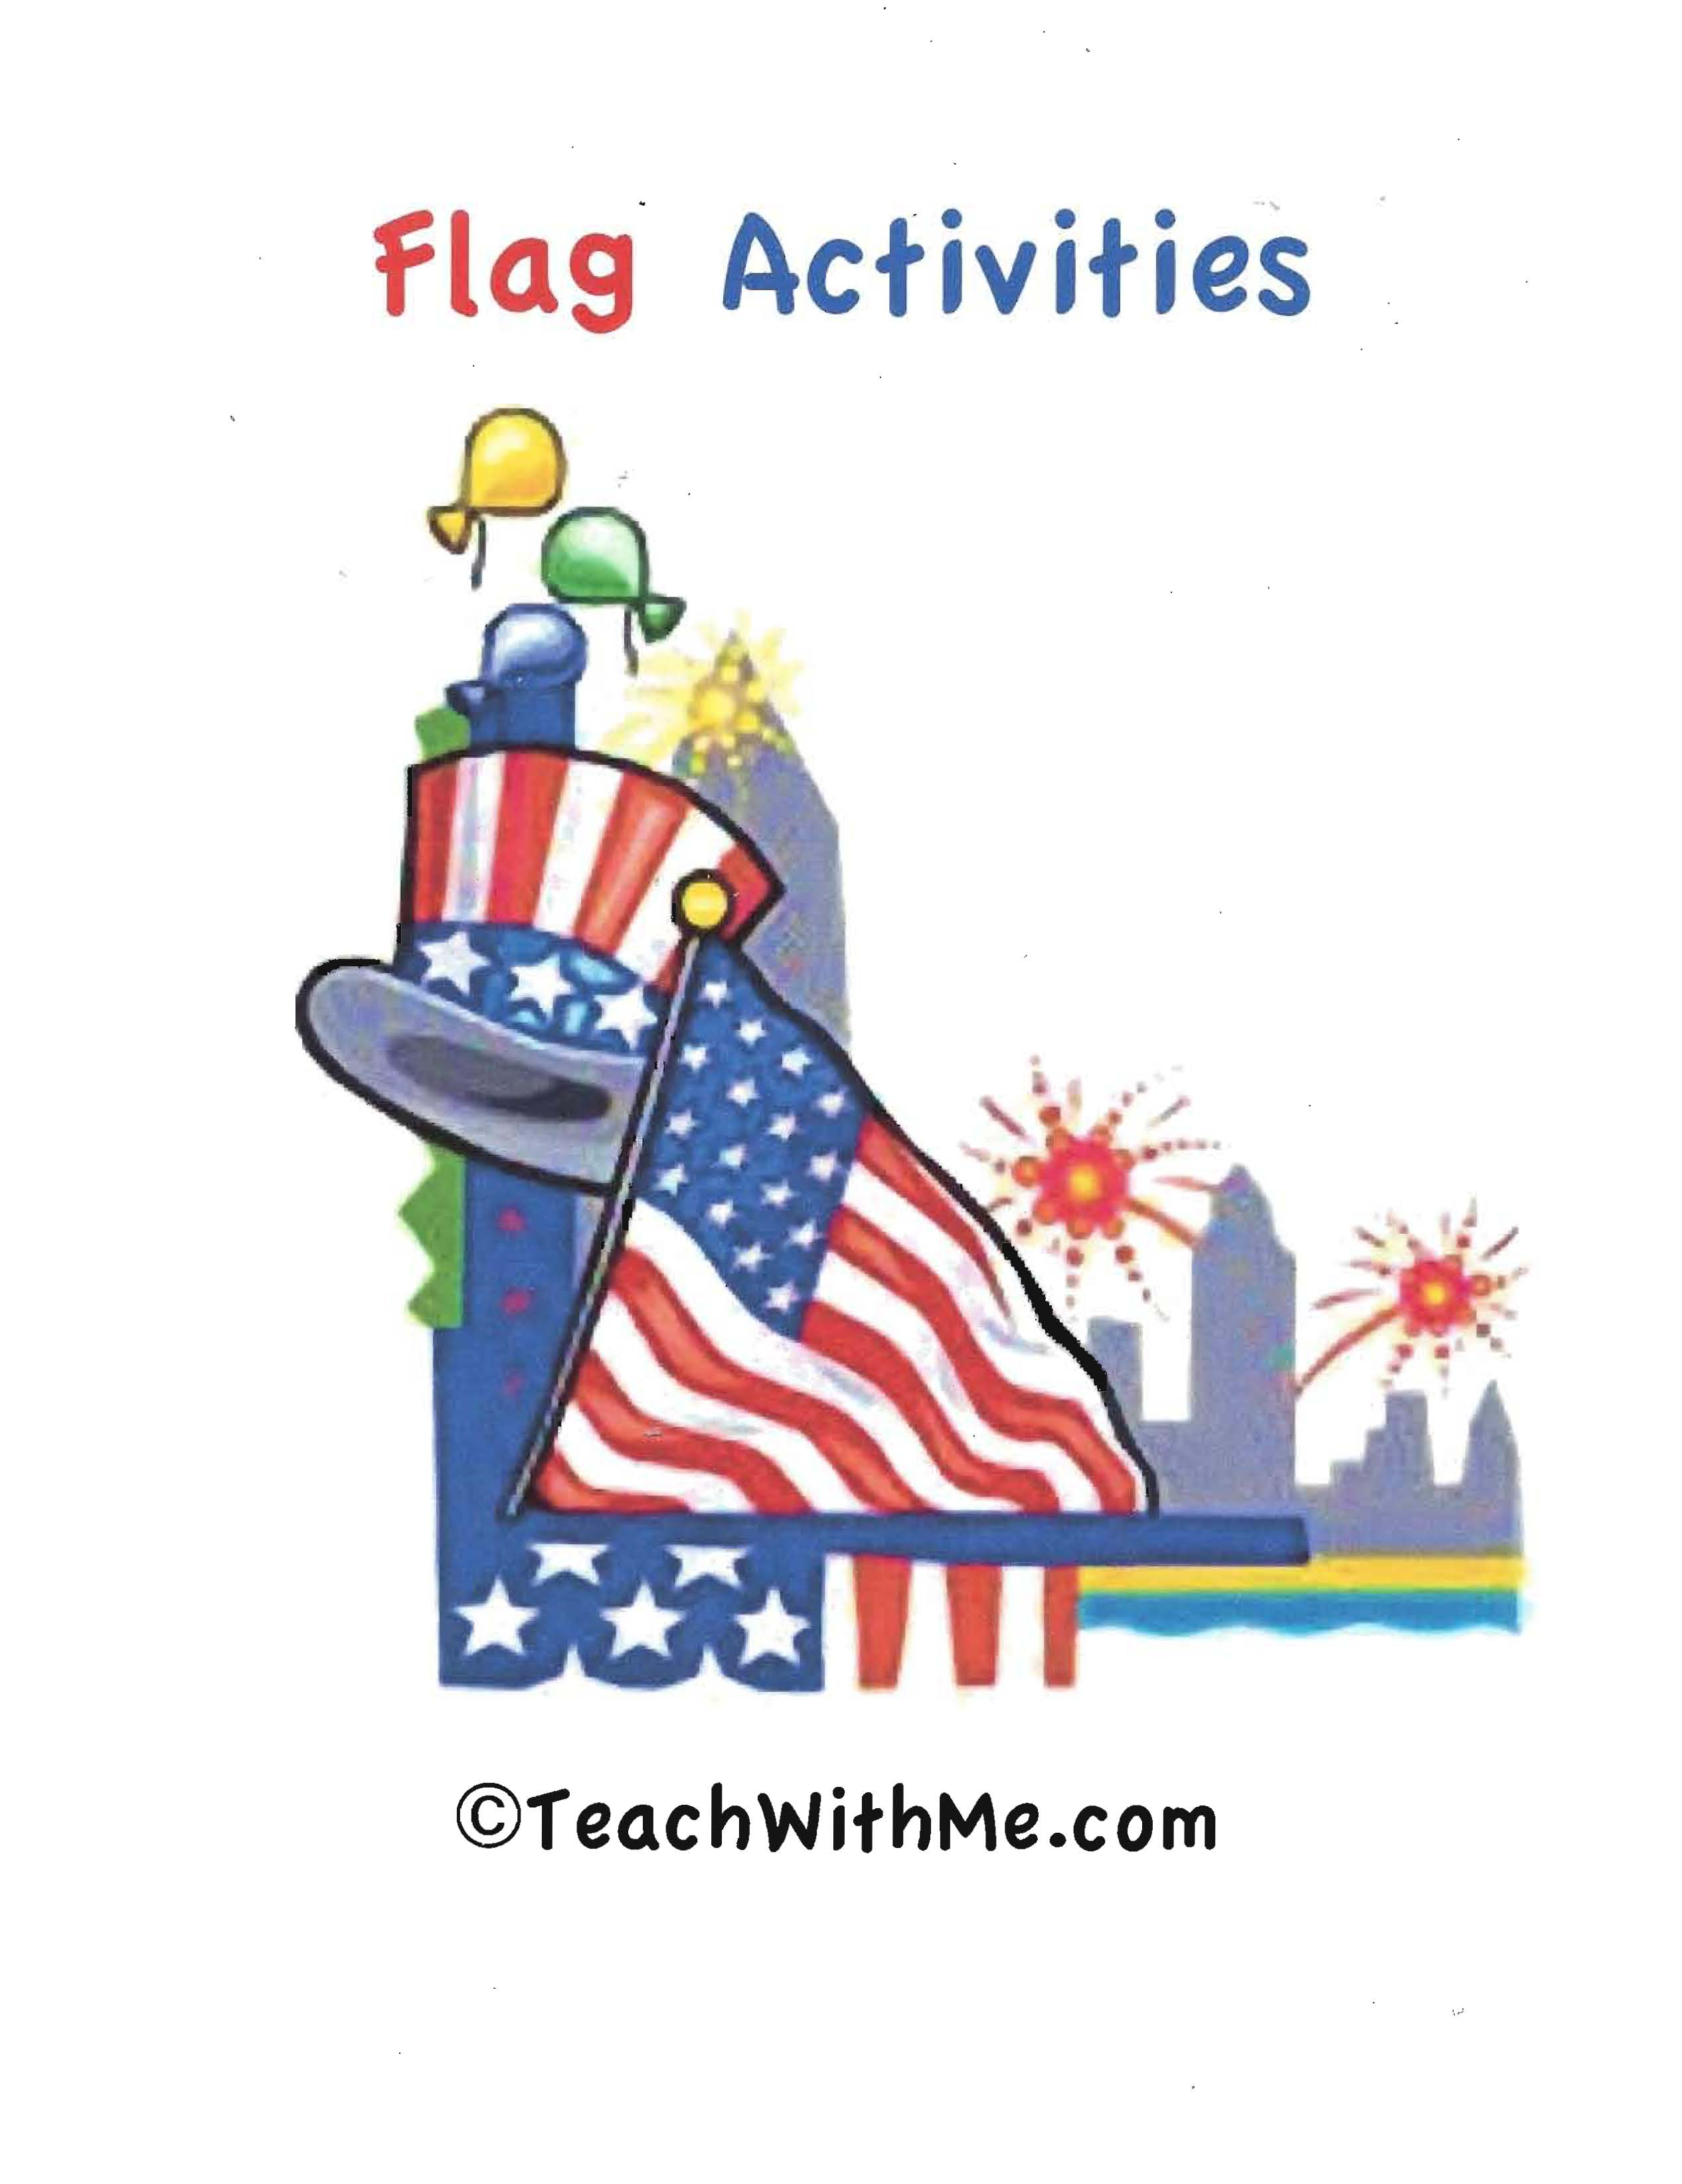 memorial day activities, memorial day lessons, flag activities, flag lessons, flag booklet, pledge of allegiance activities, pledge of allegiance lessons, pledge of allegiance booklet, patriotic activities, patriotic booklet, patriotic lessons, flag day booklet, flag day lessons, flag day activities, flag lessons, flag activities, flag booklet, 4ht of july lessons, 4th of july activities, 4ht of july booklet, Daily 5 activities for May, Daily 5 activities for spring, pledge of allegiance certificate, facts about the flag, history about the flag, US flag activities, US flag lessons,